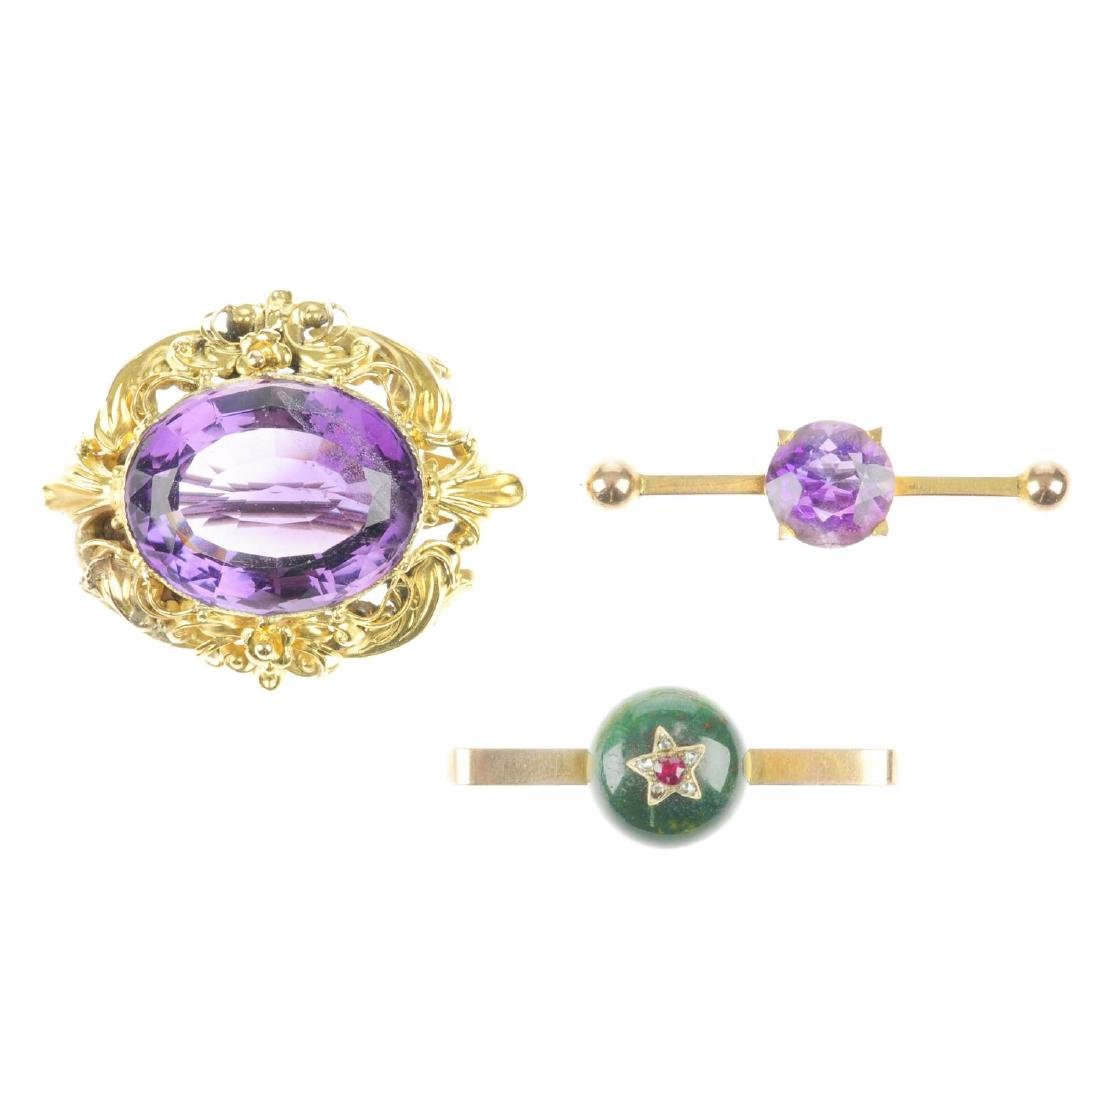 Three late 19th to early 20th century gem brooches. To